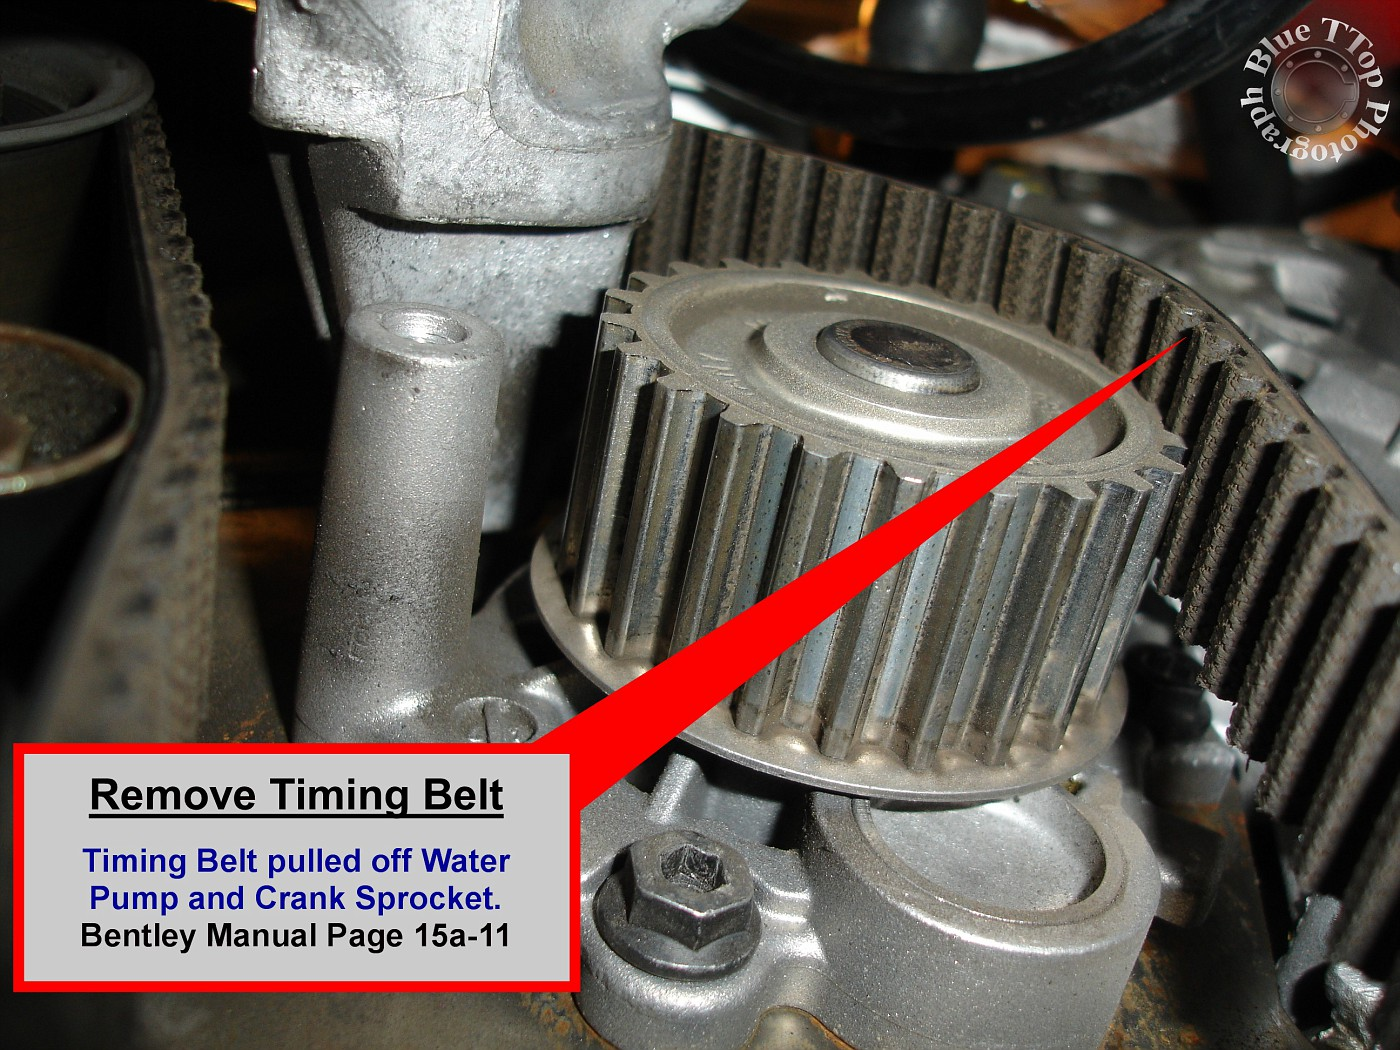 Timing Belt Replacement Writeup With 61 Pictures And 44